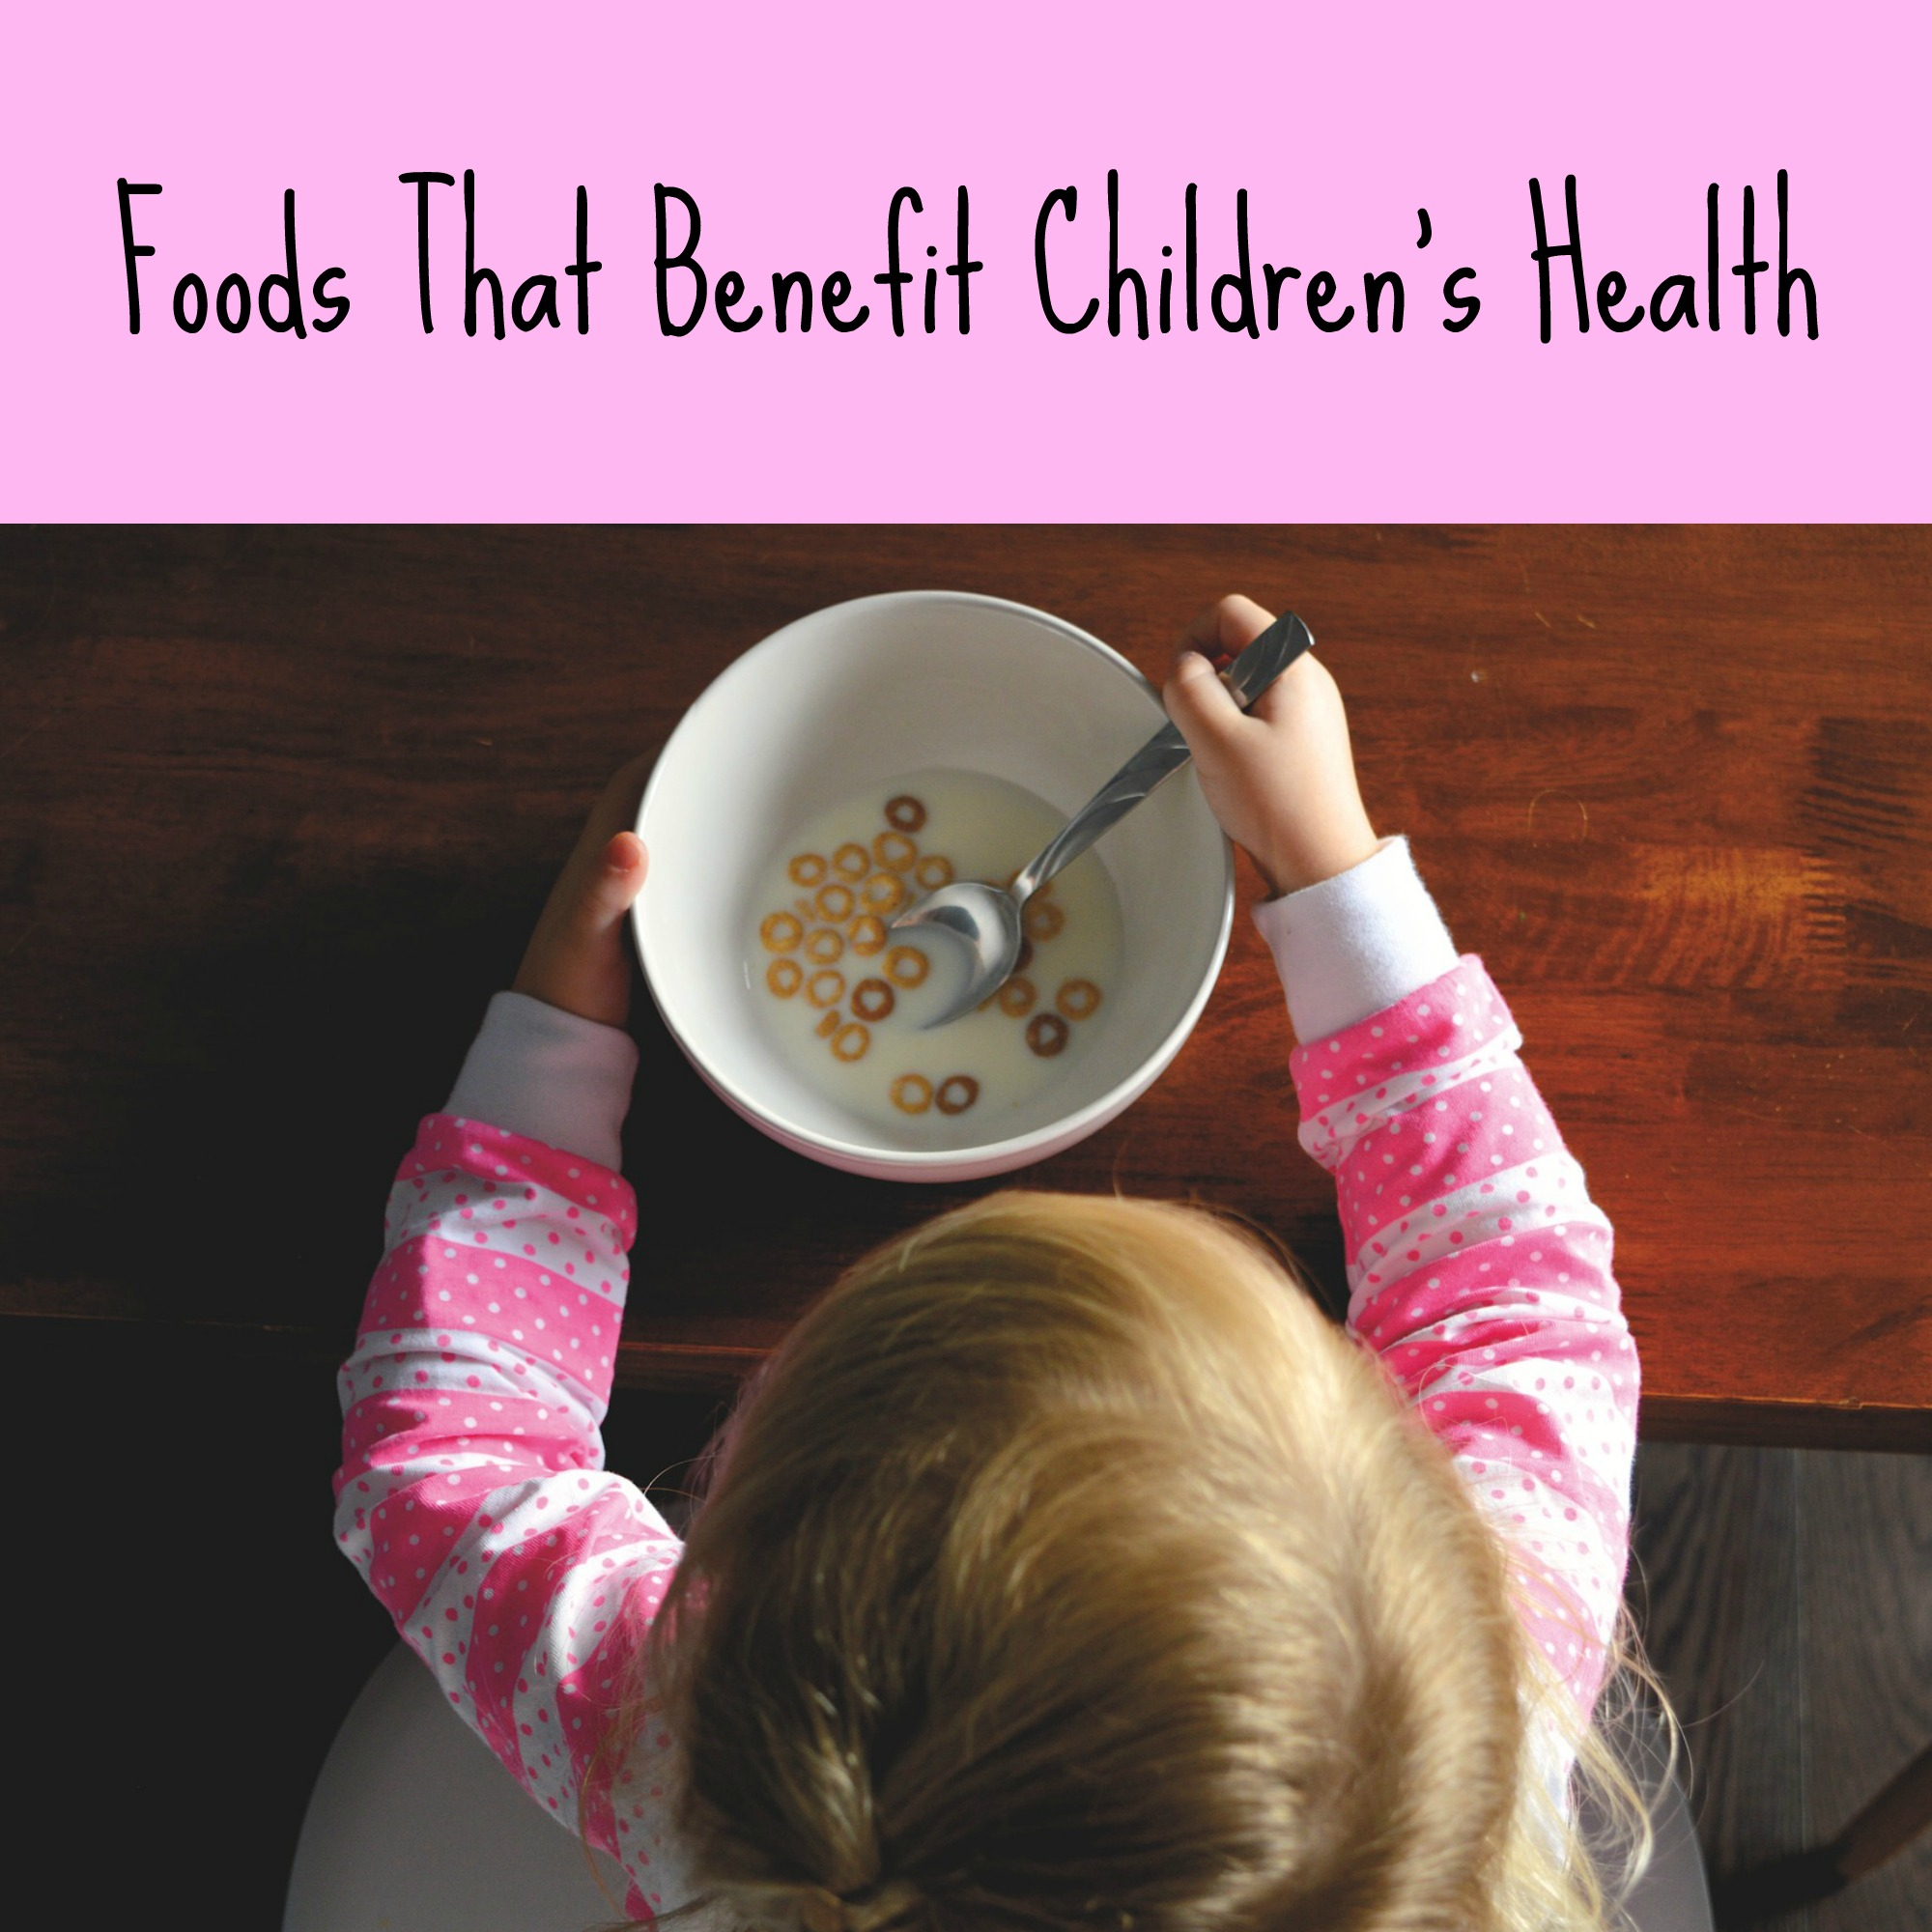 Foods That Benefit Children's Health